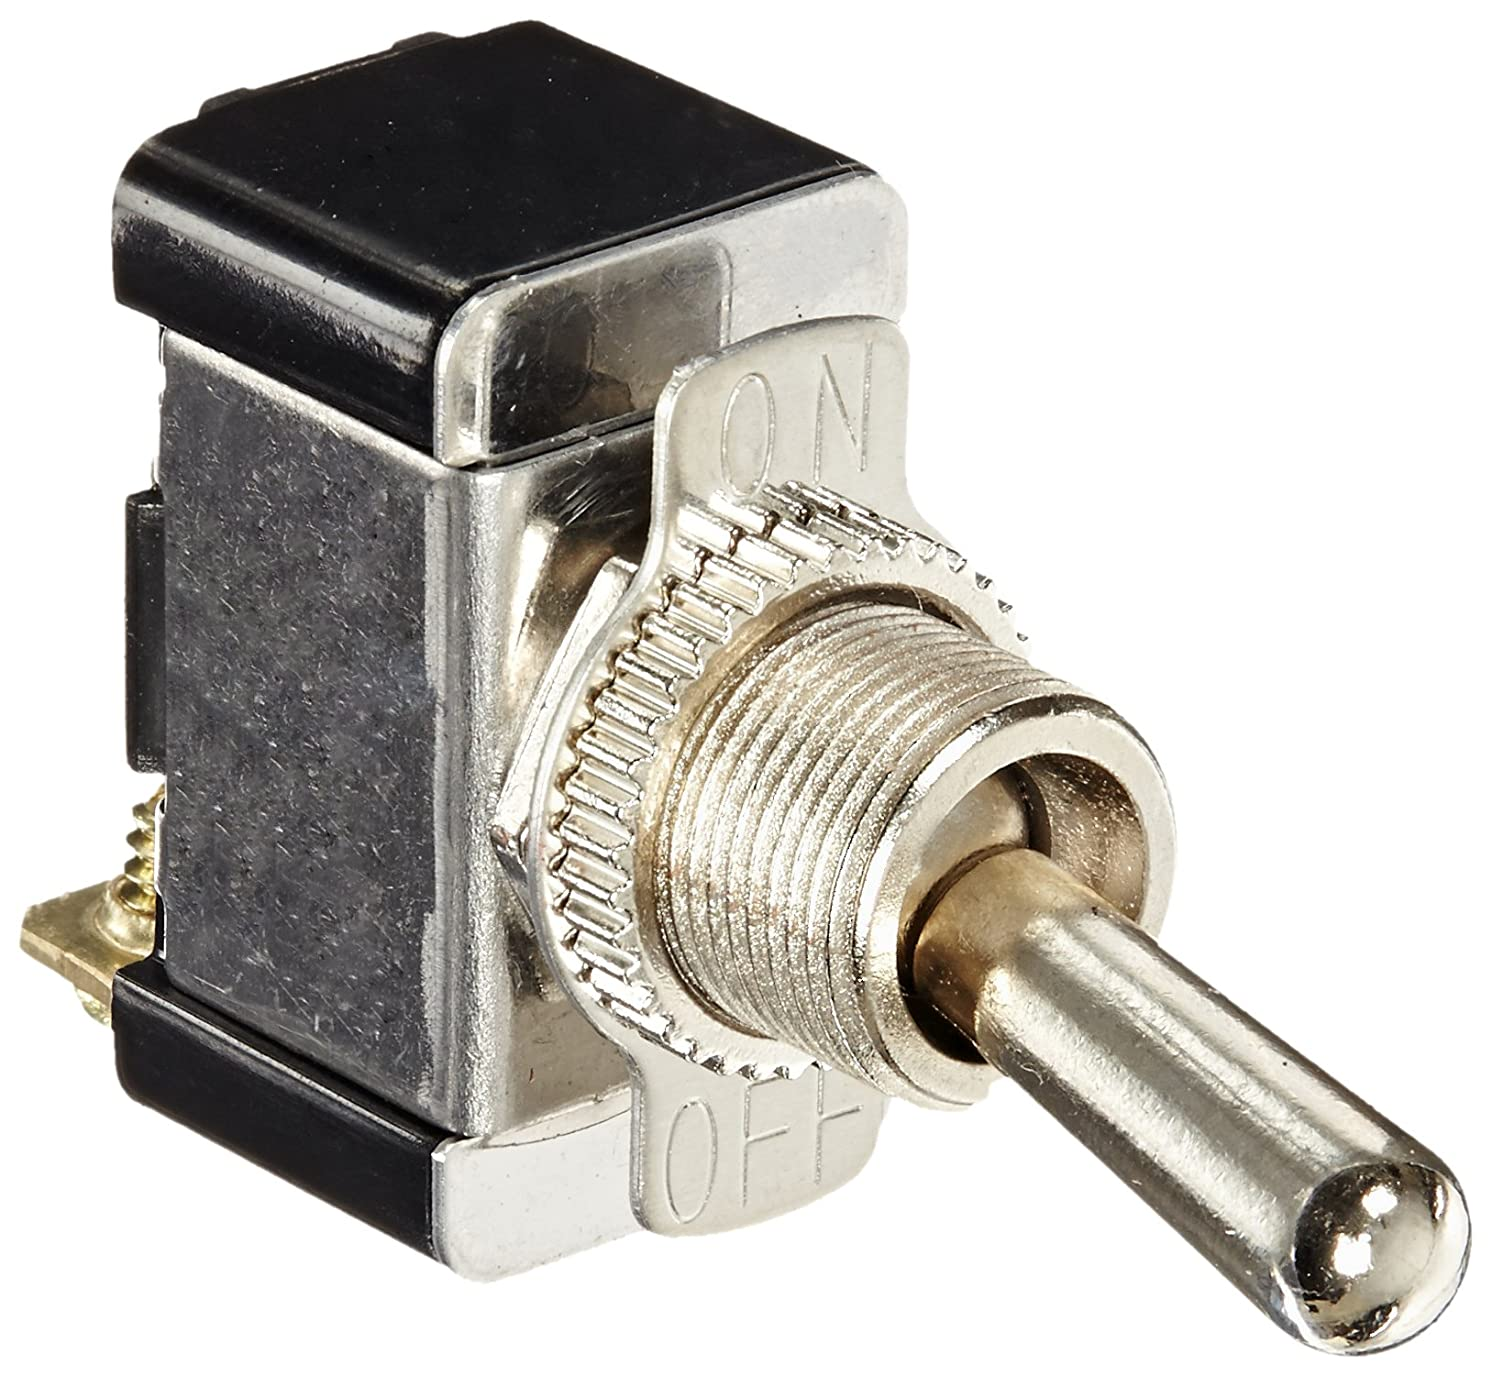 Toggle Switch, Maintained Contact and Single Pole, On Off Circut Function, SPST, Brass/Nickel Actuator, 20/10 amps at 125/250 VAC, Screw Connection